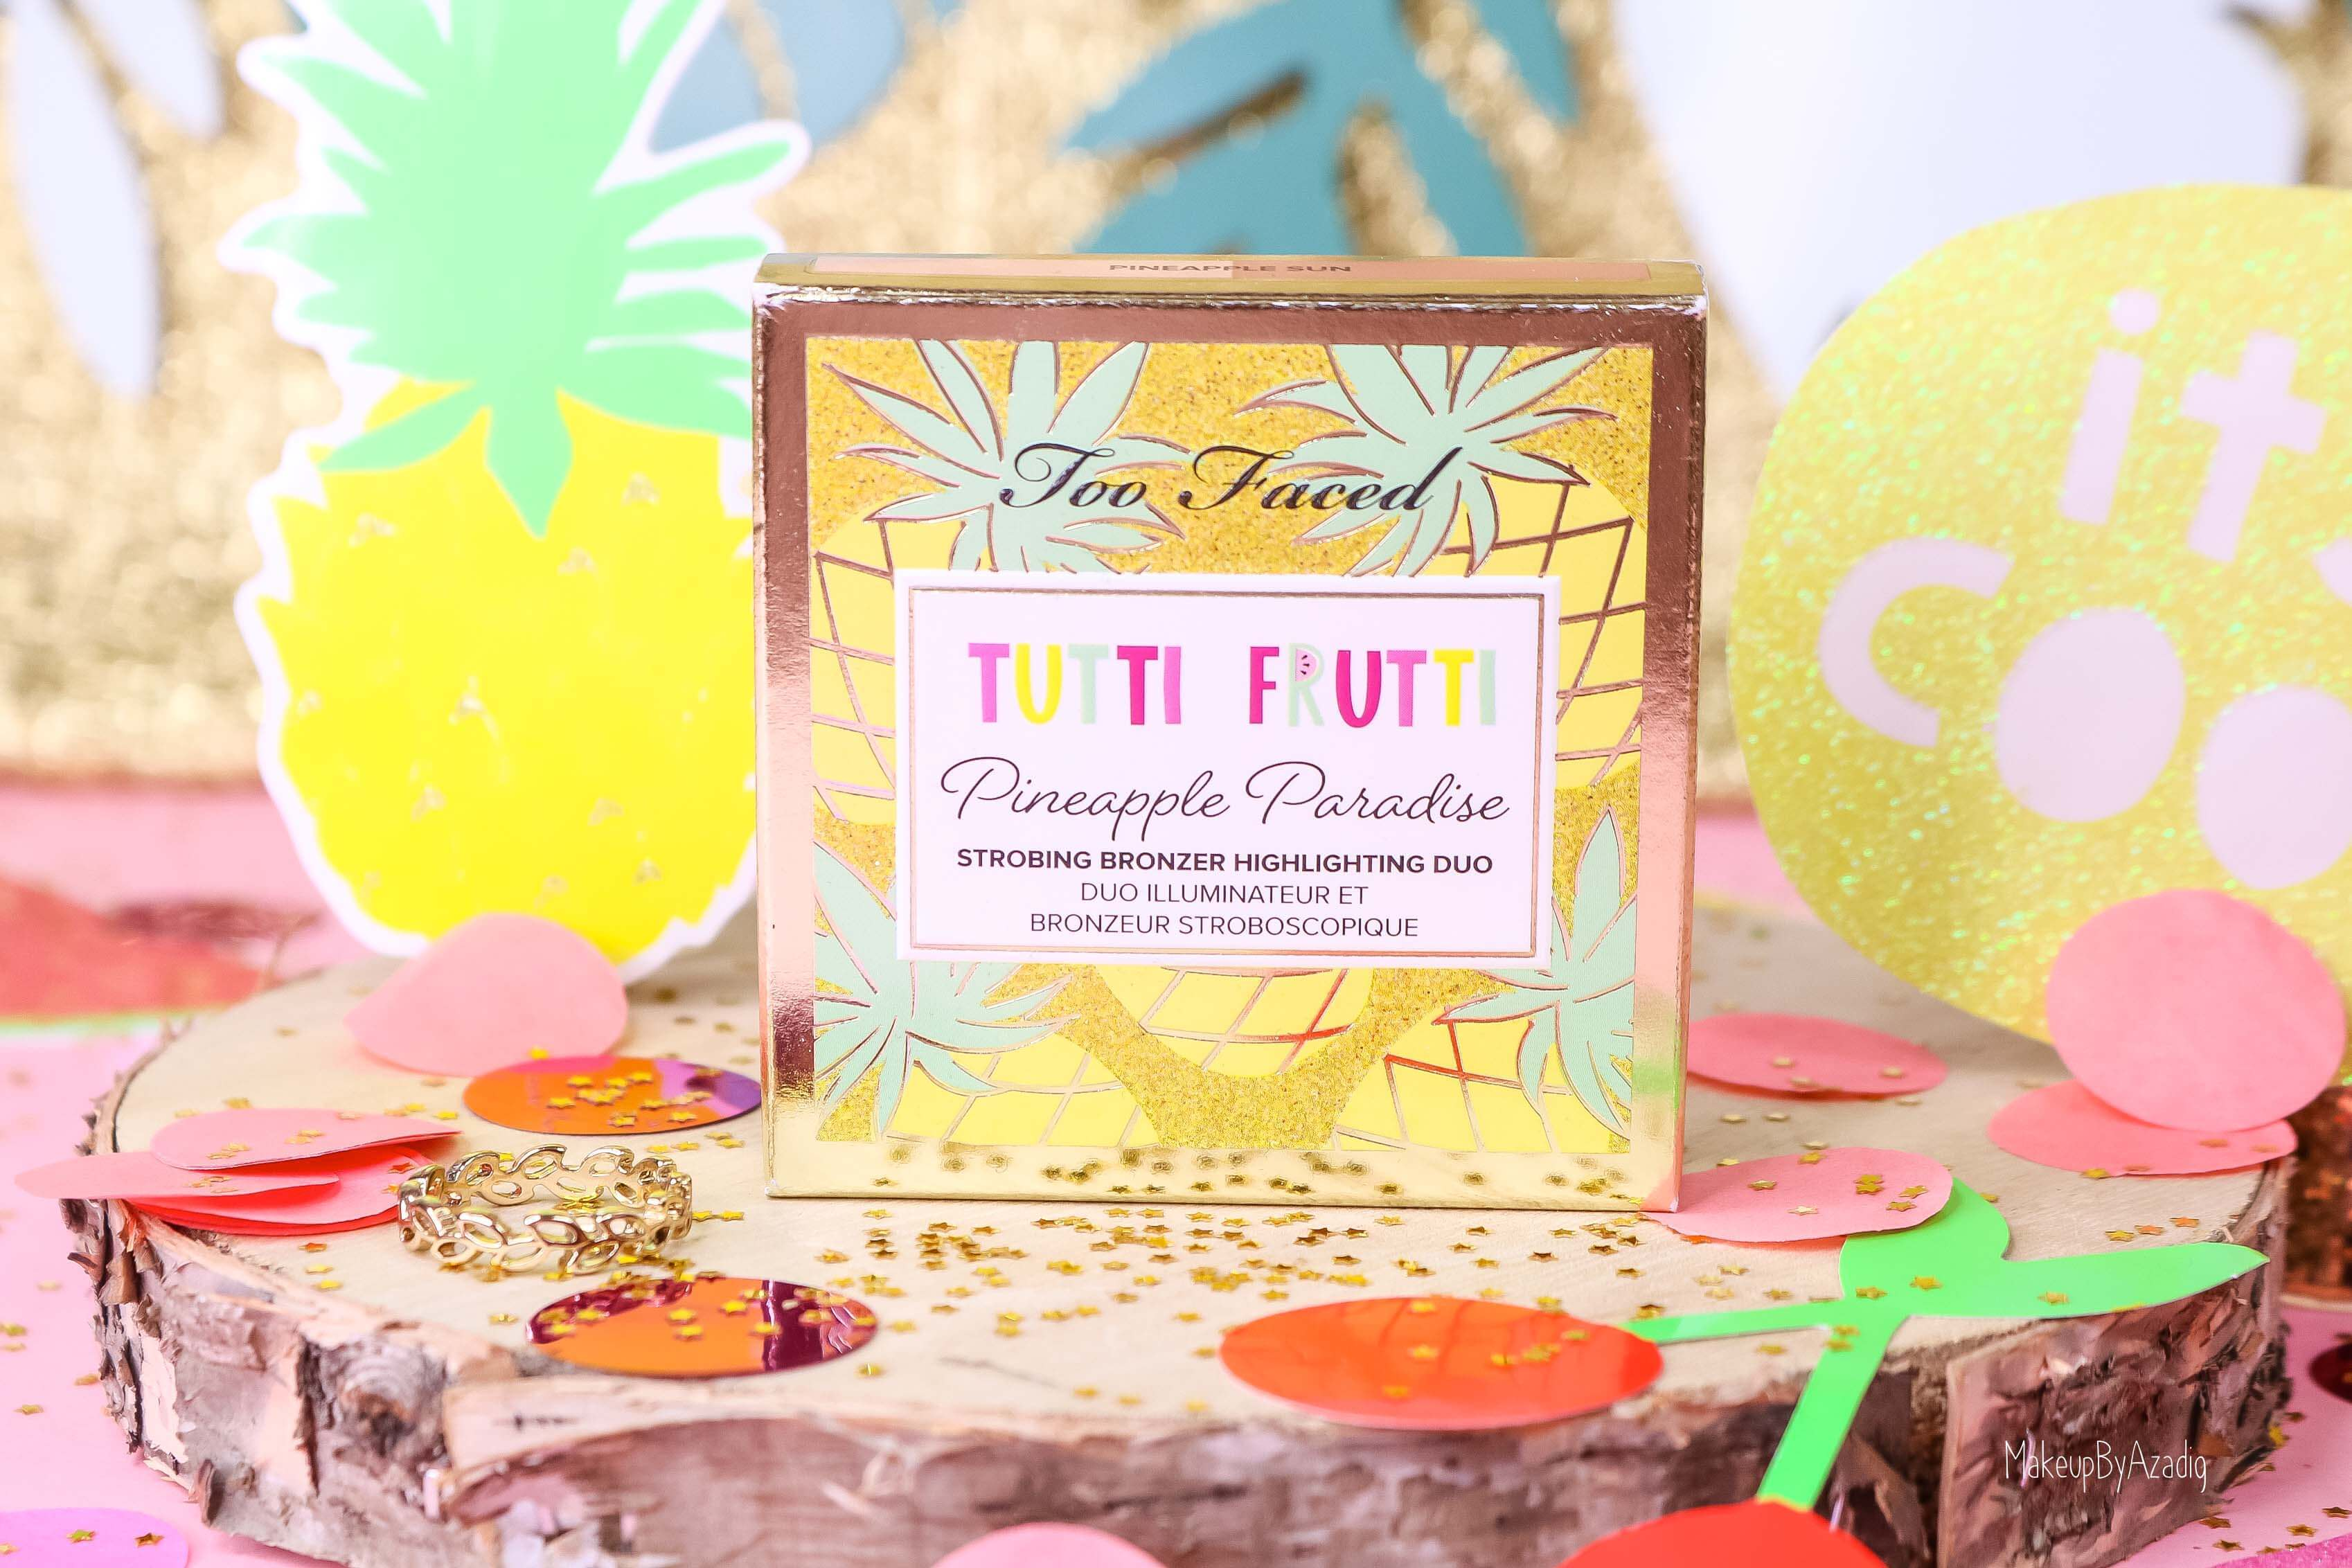 revue-collection-tutti-frutti-too-faced-bronzeur-highlighter-pineapple-paradise-sun-sephora-france-makeupbyazadig-swatch-avis-prix-ananas-fruit